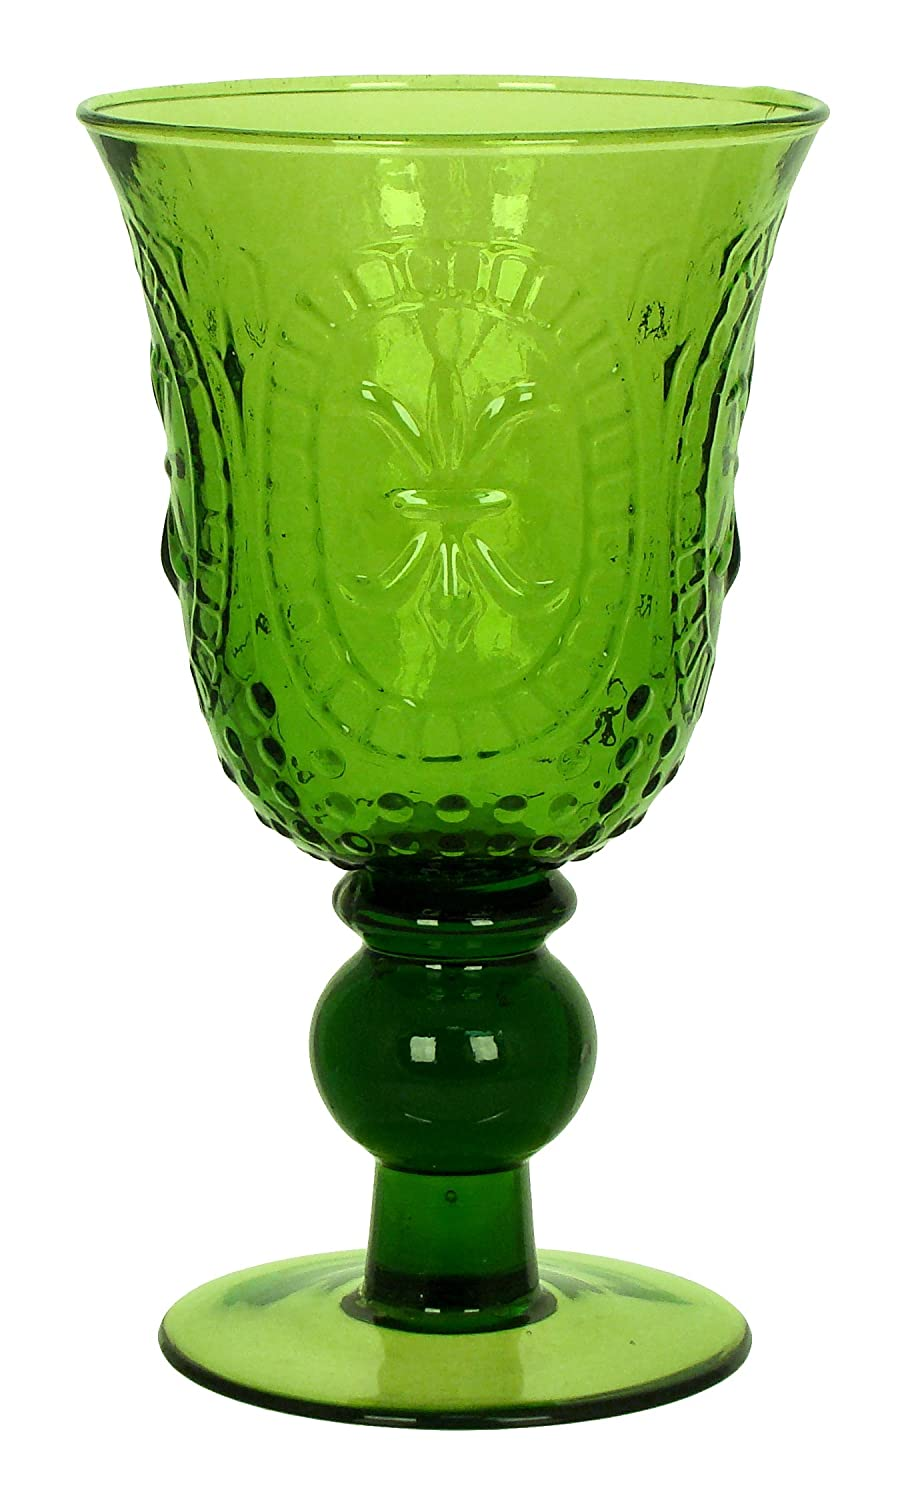 Christmas Tablescape Décor - Handmade green Renaissance style pressed glass goblet - Set of 4